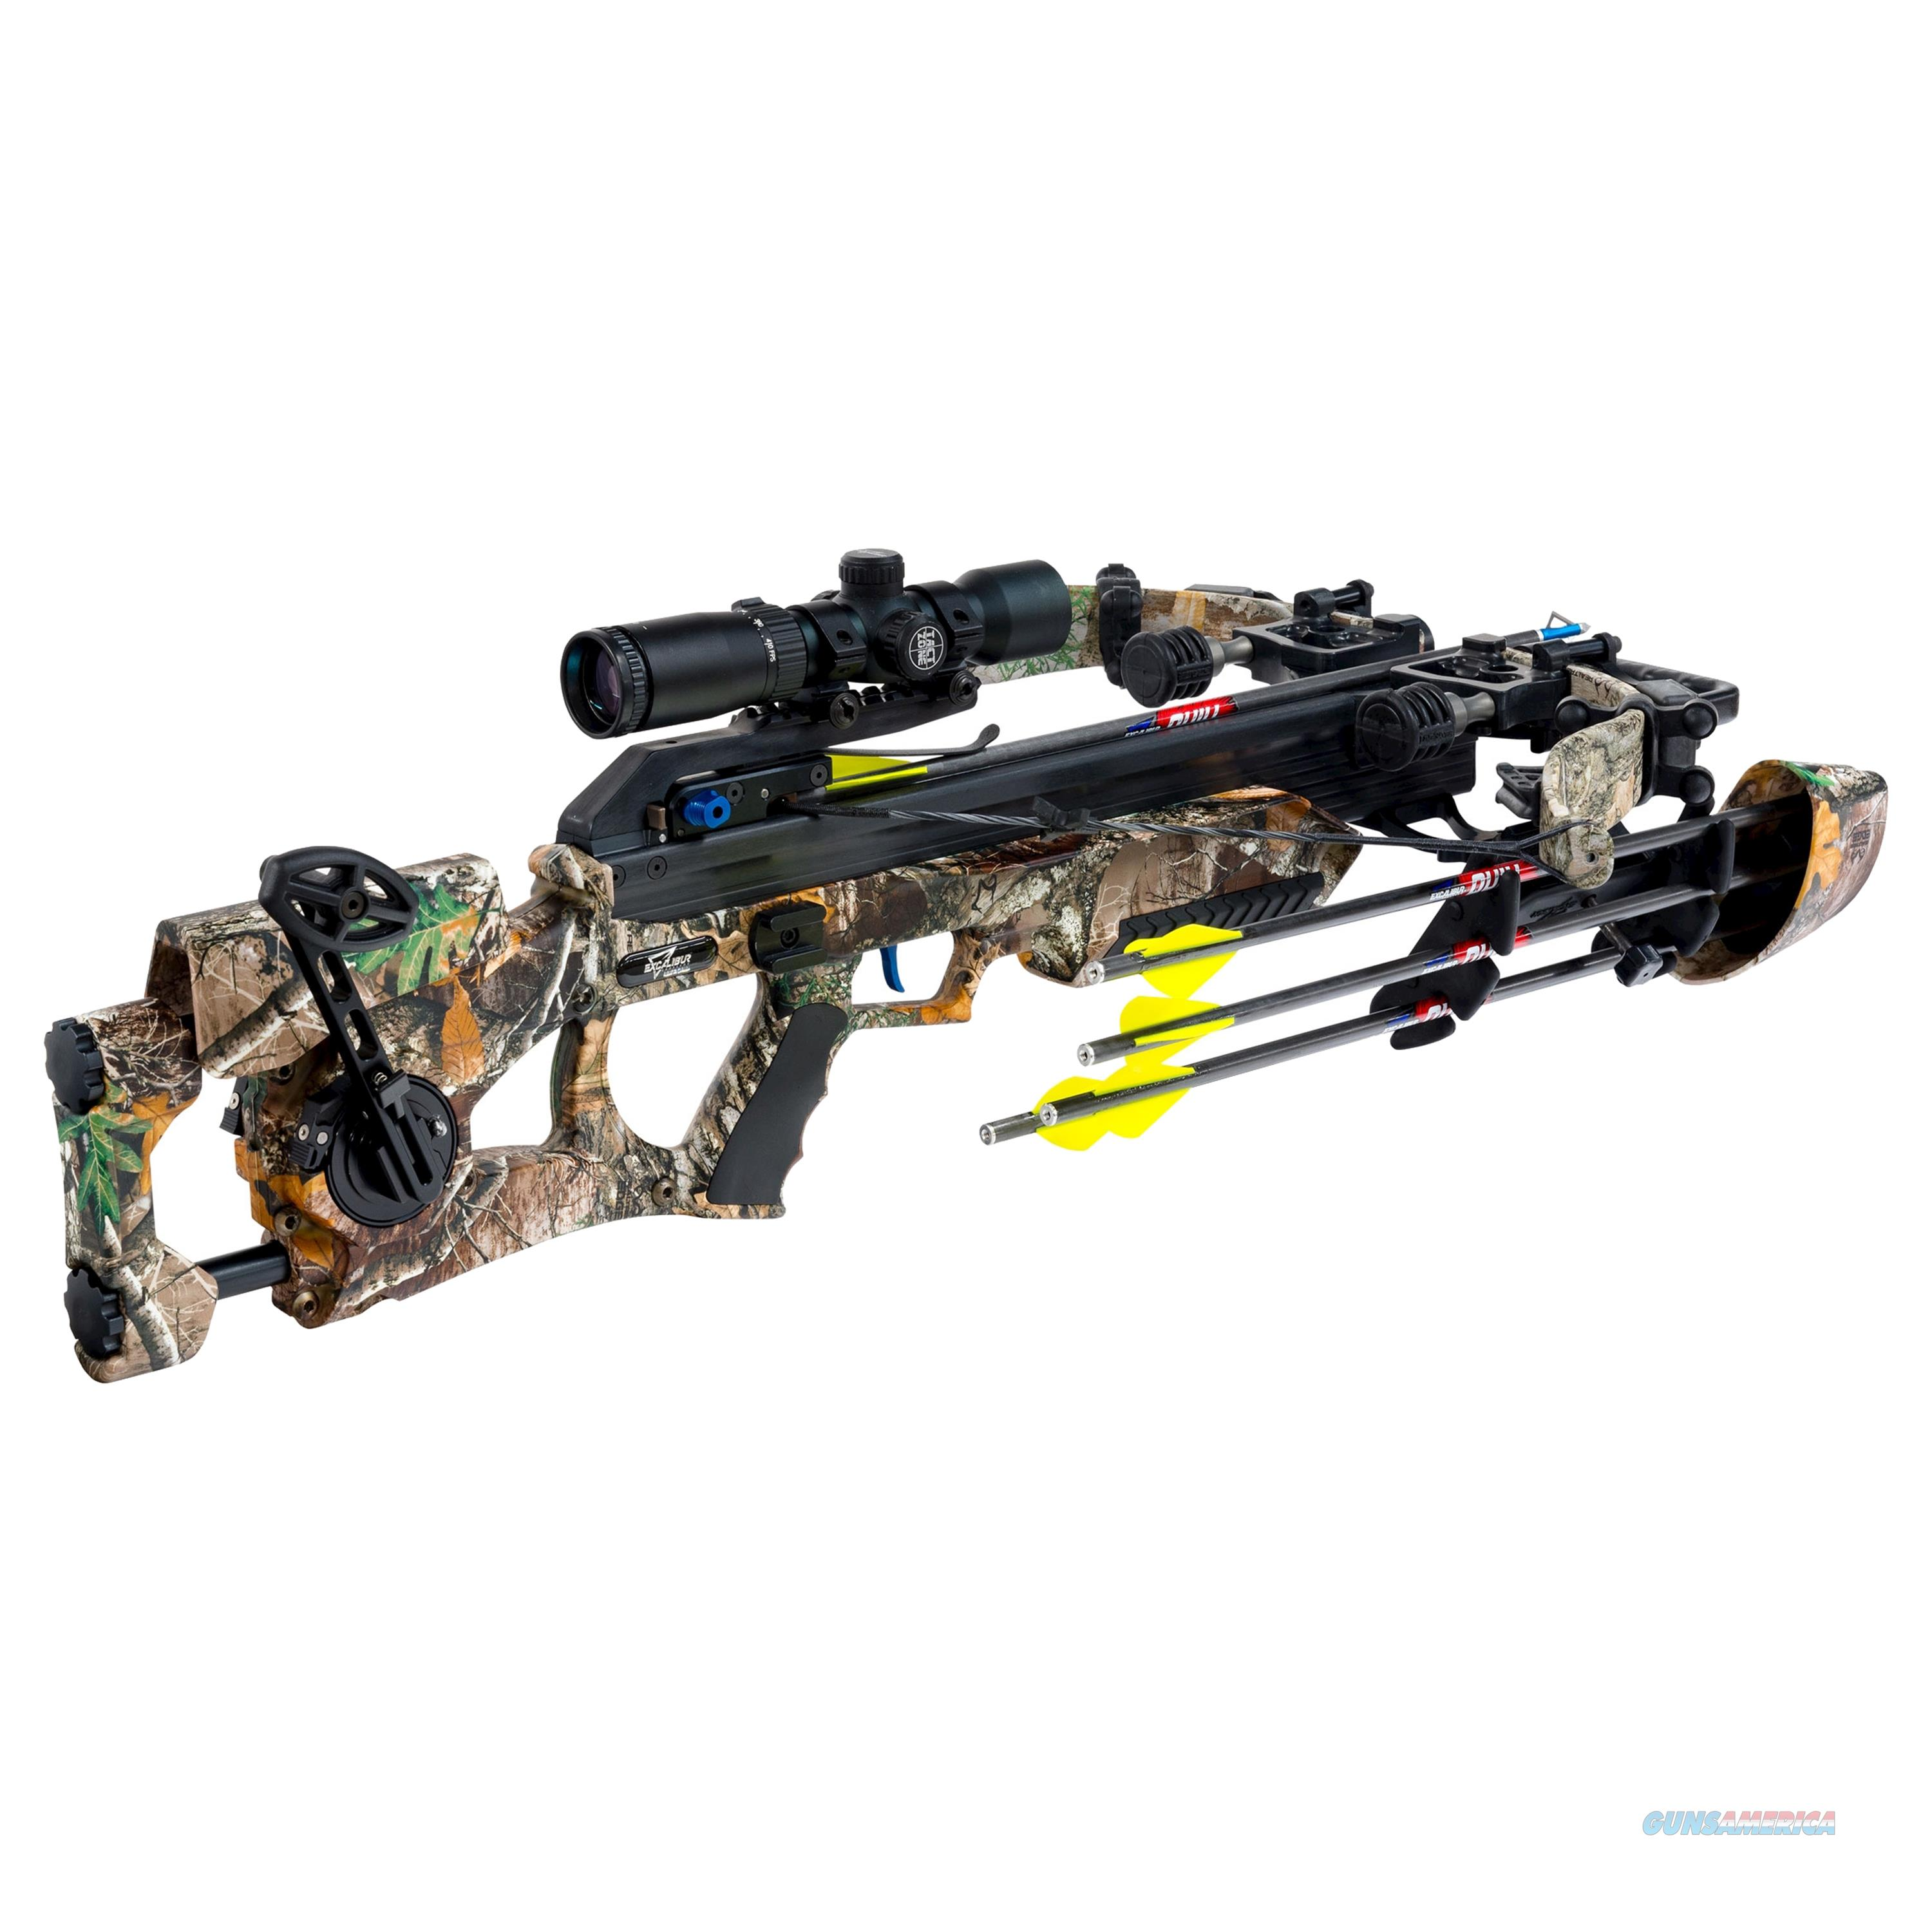 Excalibur Assassin 360 Crossbow Package, Realtree Edge E74047  Non-Guns > Archery > Bows > Crossbows